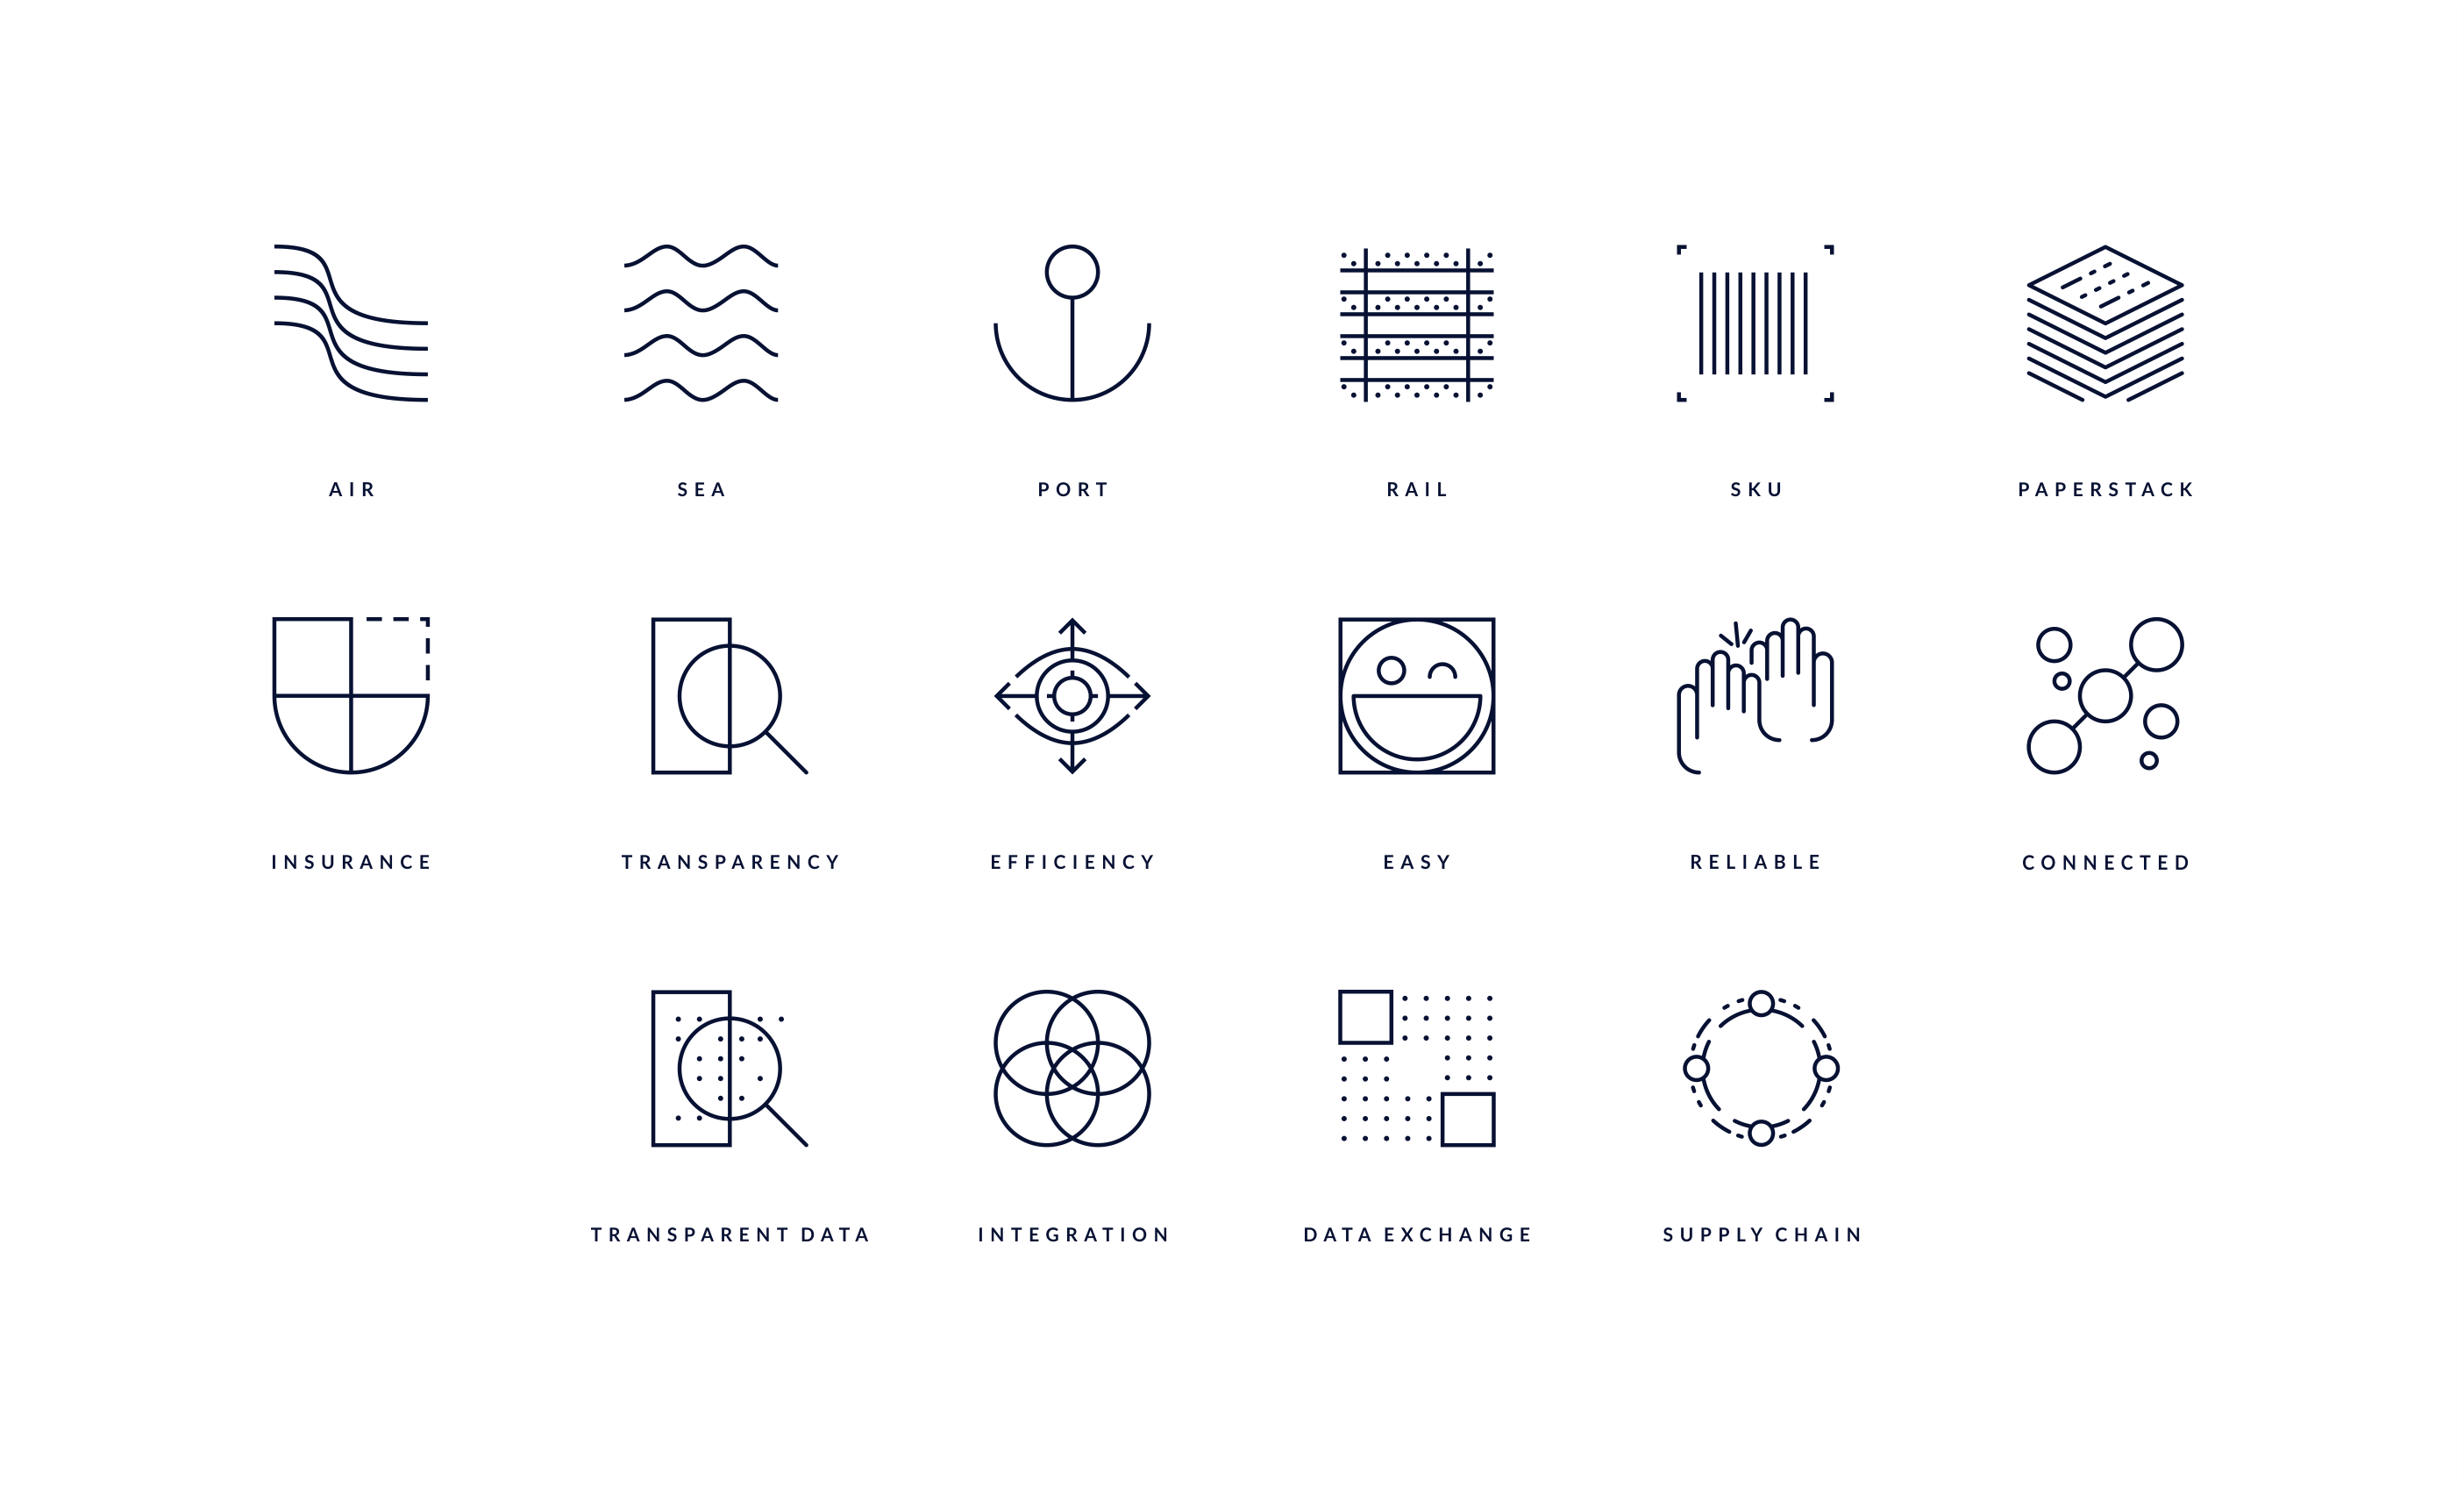 freighthub-presented-icons-light-group2-v2-png1